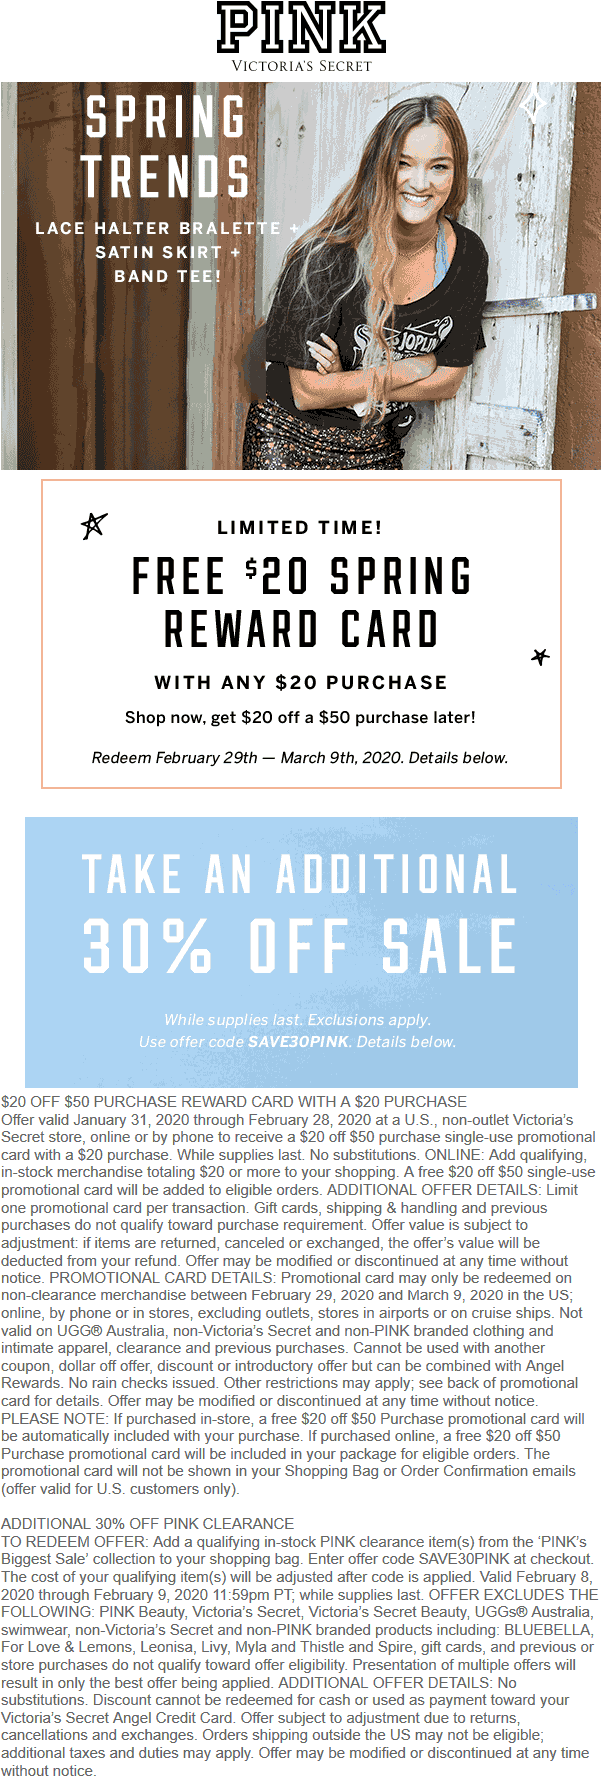 PINK coupons & promo code for [July 2020]